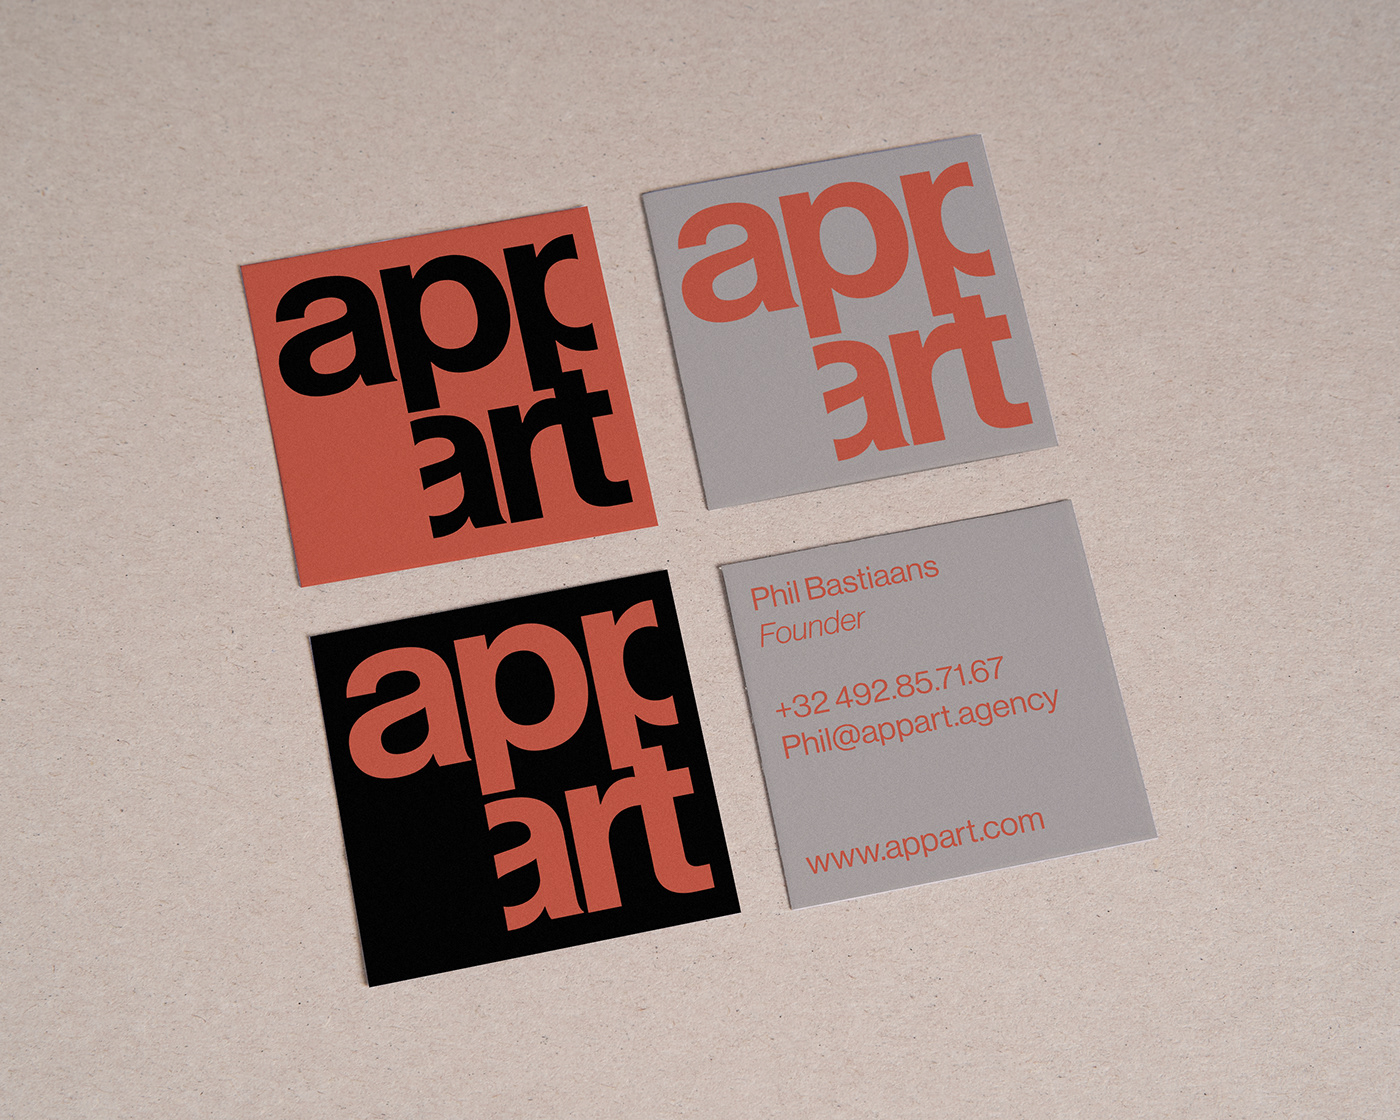 Appart business card-1